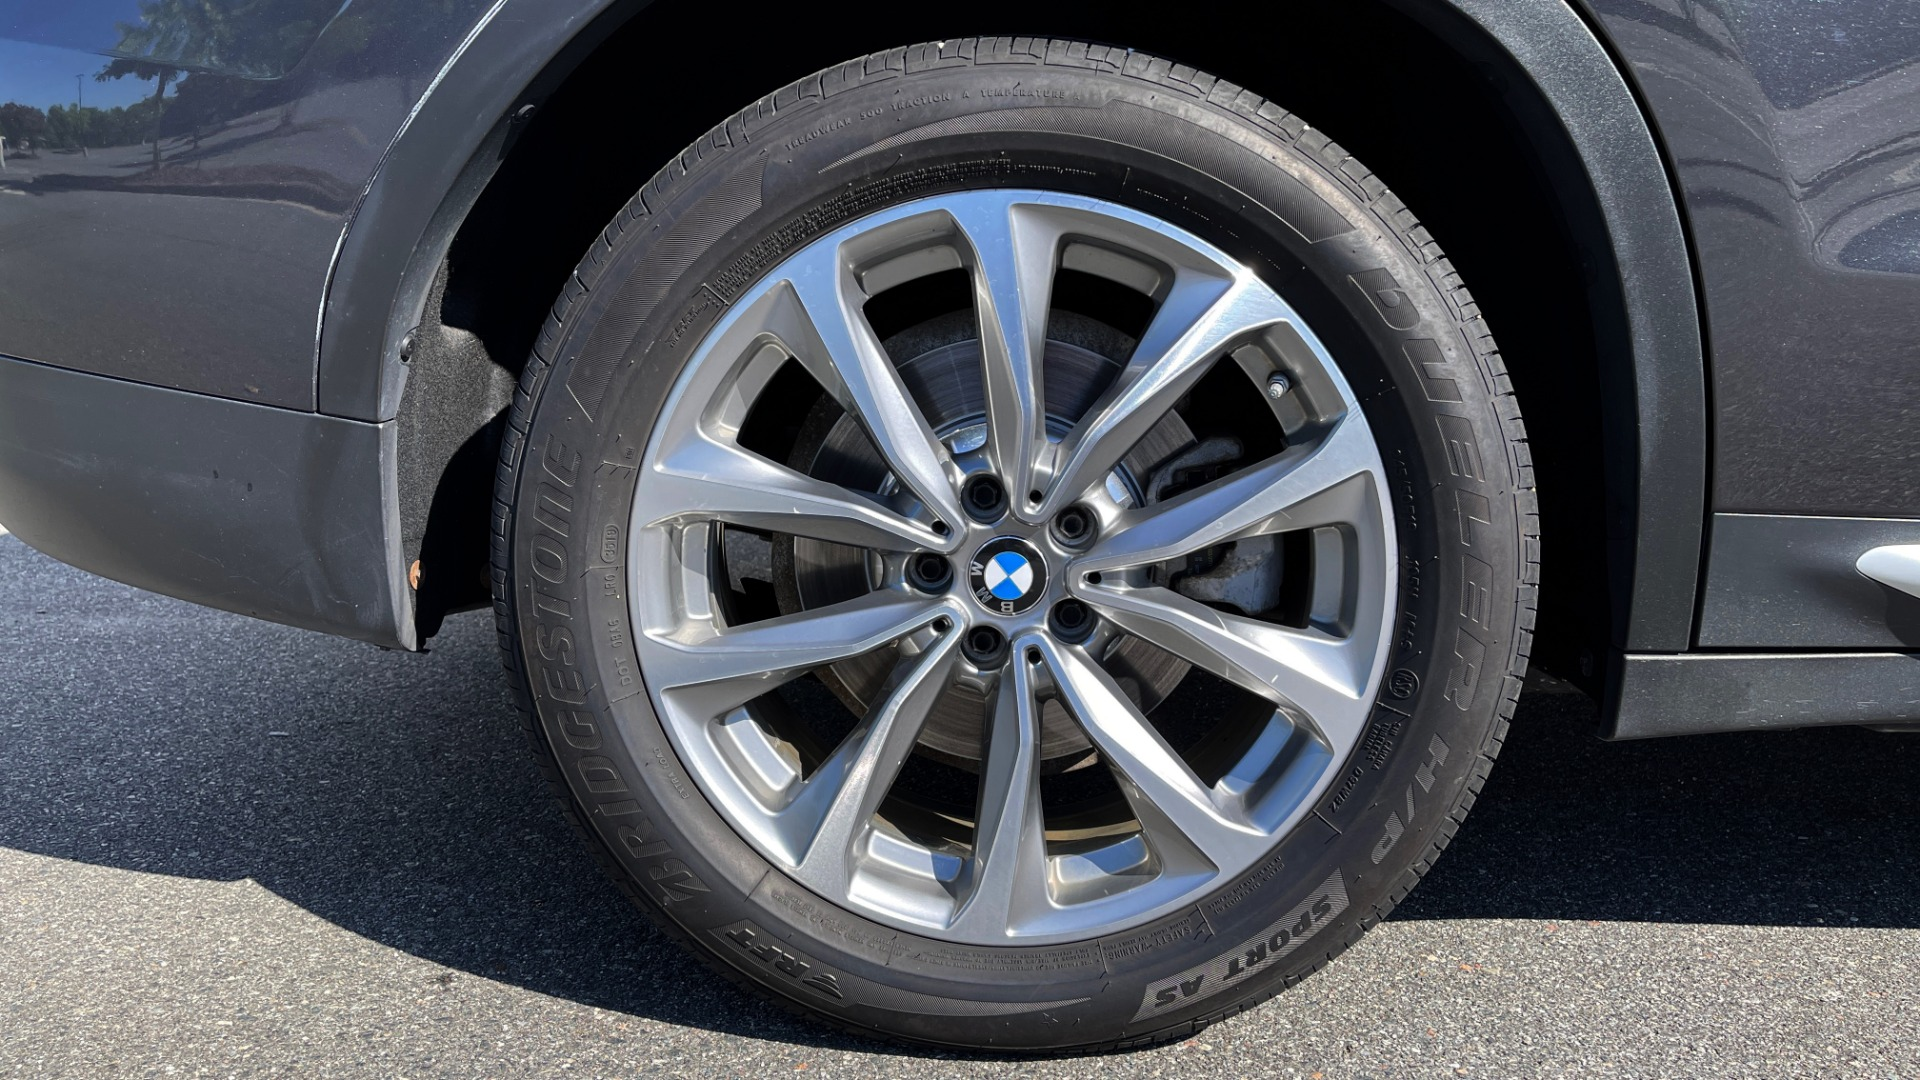 Used 2018 BMW X3 XDRIVE30I PREMIUM / NAV / DRVR ASST PLUS / CONV PKG / SUNROOF / REARVIEW for sale $33,795 at Formula Imports in Charlotte NC 28227 81